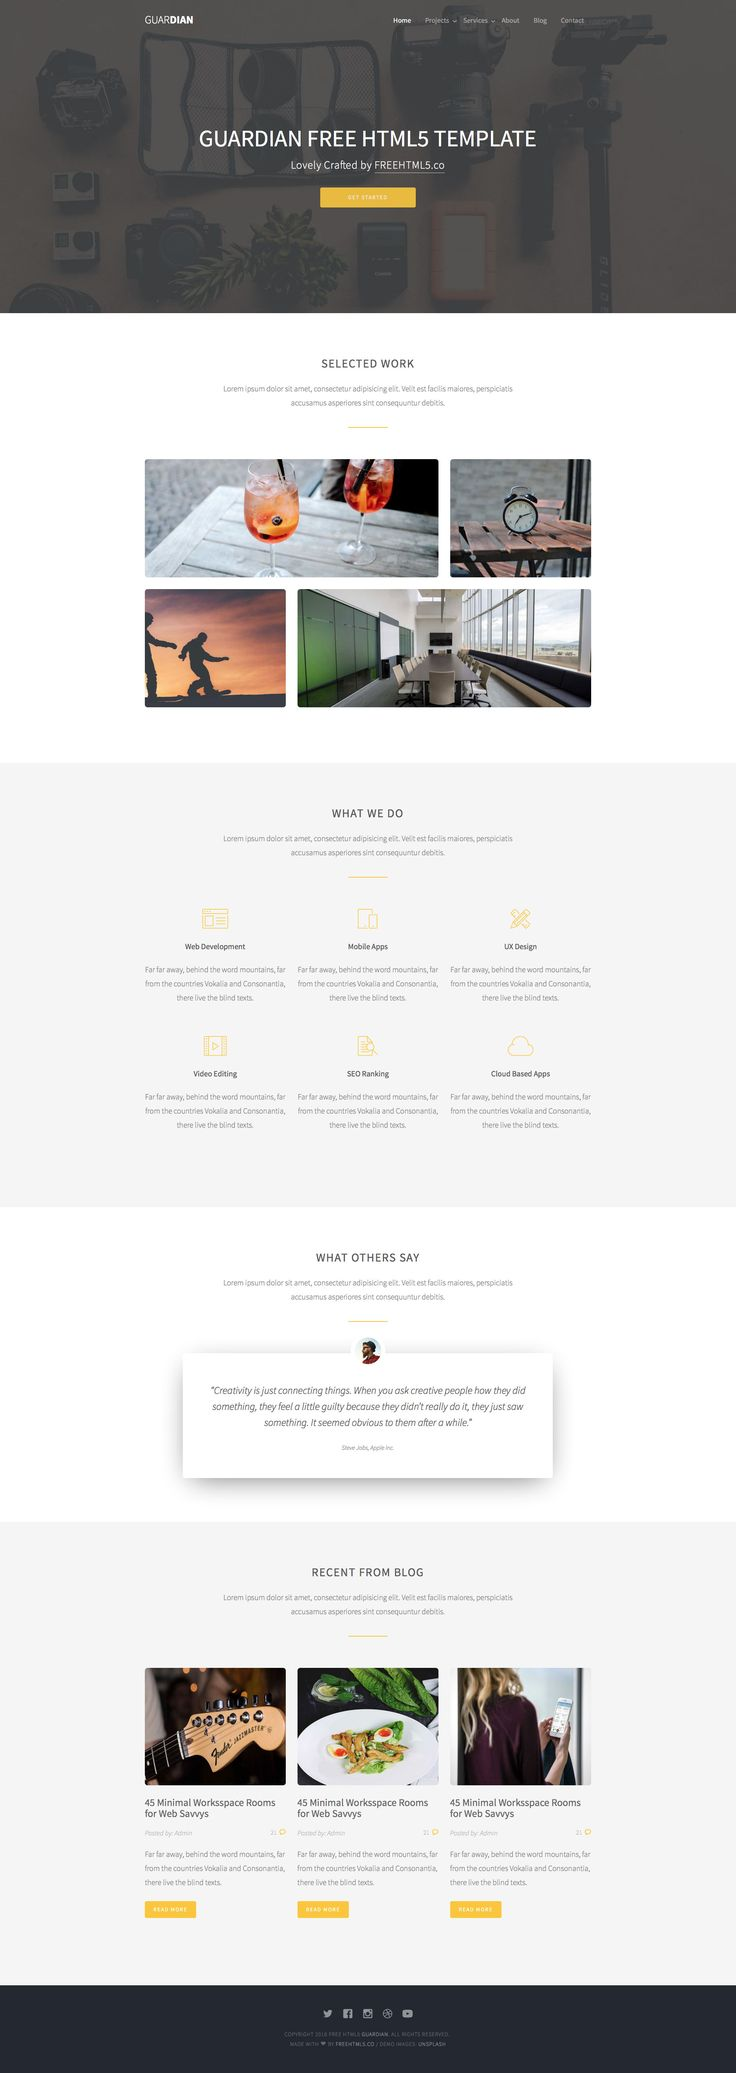 Guardian is a free responsive HTML5 Bootstrap multipurpose website template for business, corporate or agency websites. This template is fully responsive, retina ready and built on the popular Bootstrap 3 framework.